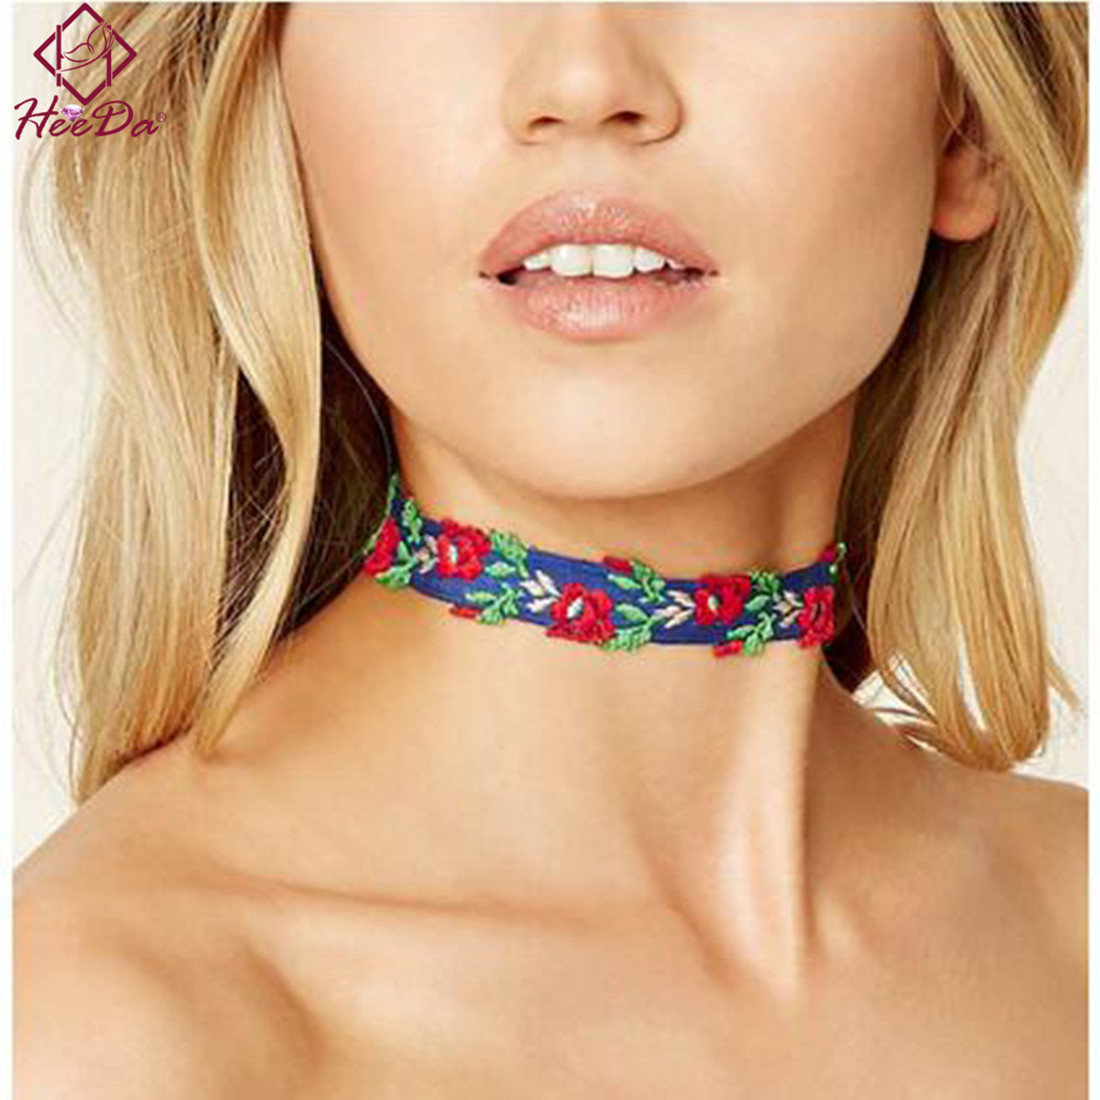 Heeda Women Retro Style Ethnic Embroidering Flower Necklace Jewelry 2017 New High-end Elegant Handcraft Woven Cloth Choker